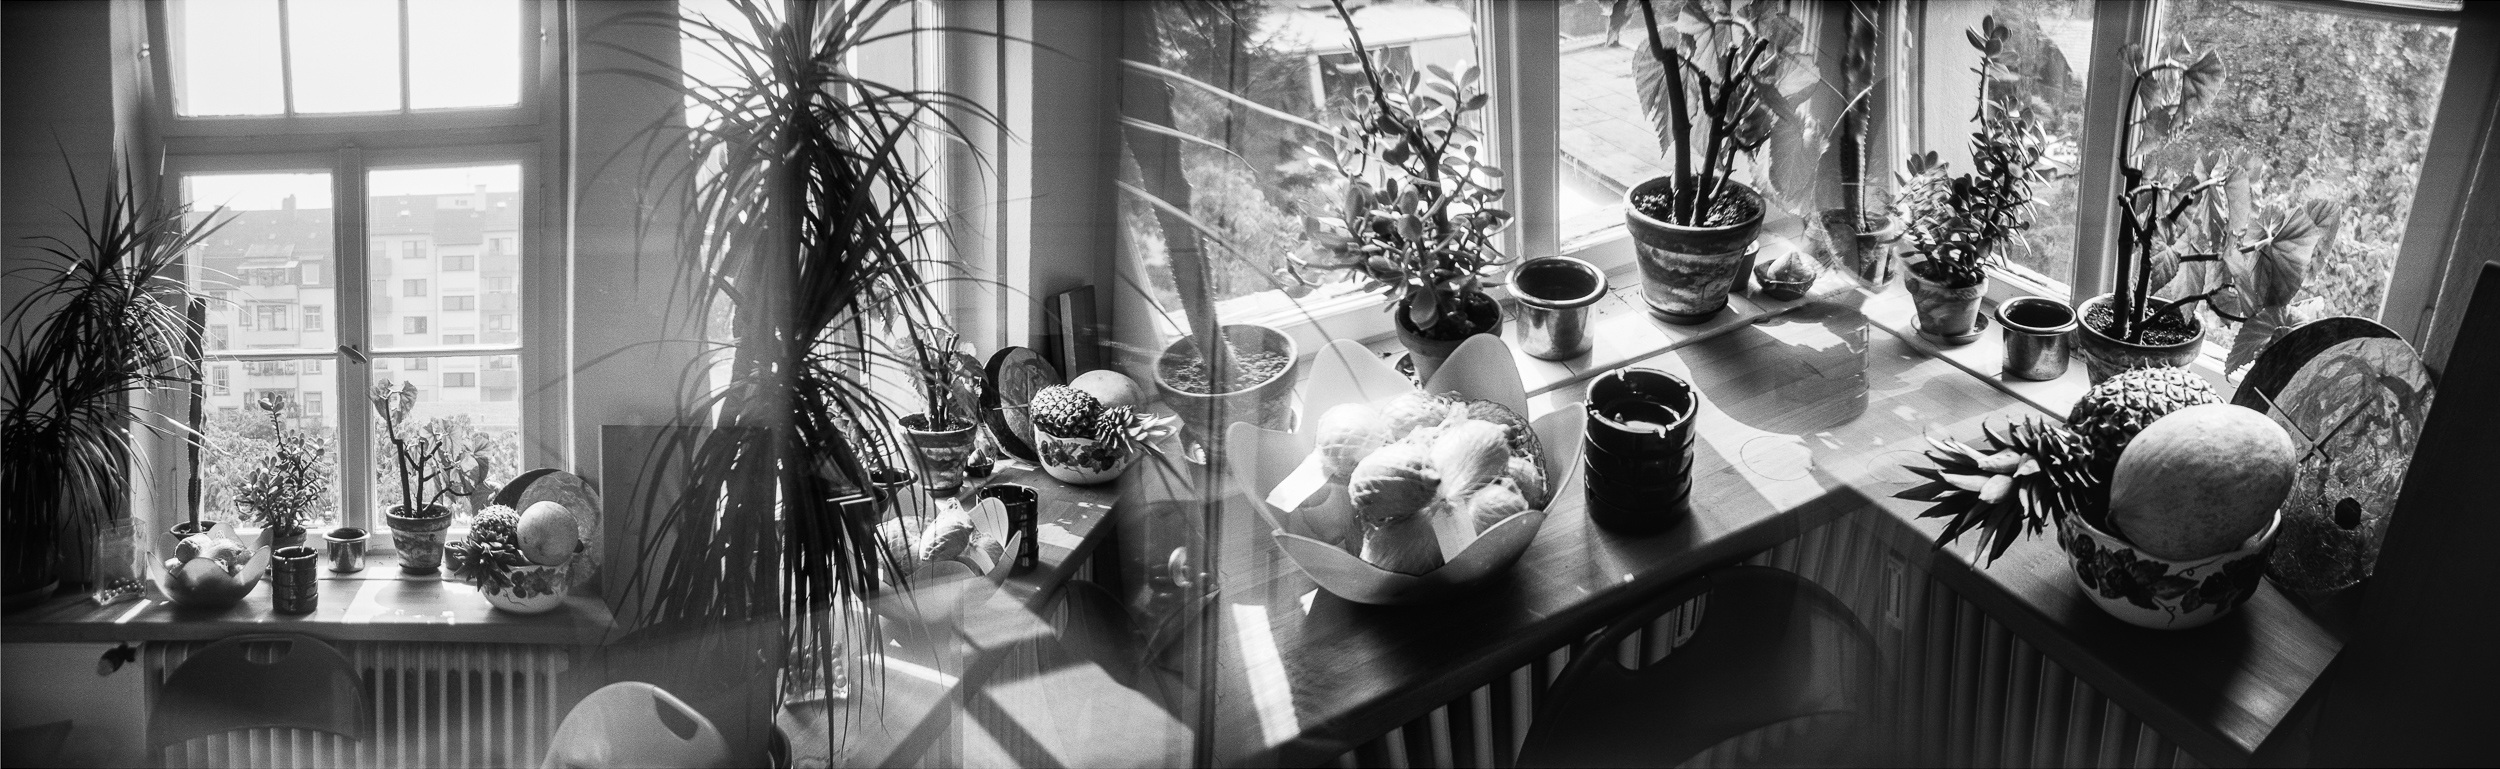 Black and white photograph of succulents in a minimalist style kitchen using house plants for interior decoration. The family Cactaceae in Karlsruhe, Germany.  Series entitled Lieux-dits by Elise Prudhomme.